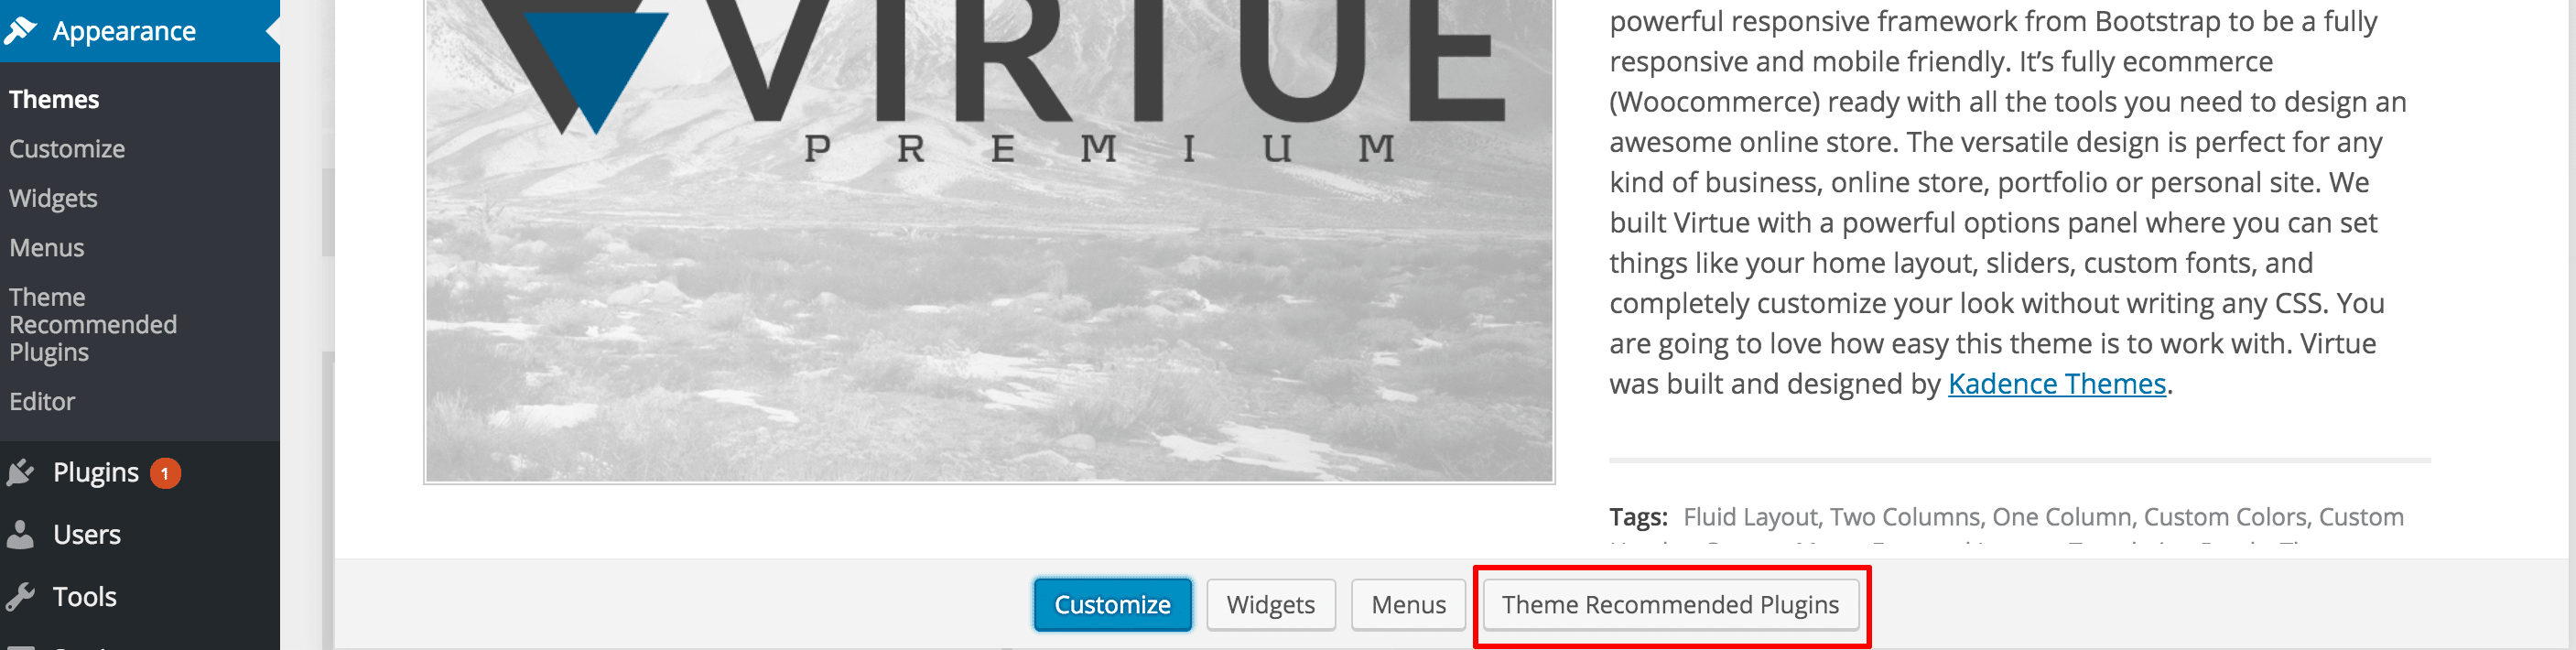 2.3 recommended plugins viatheme-min